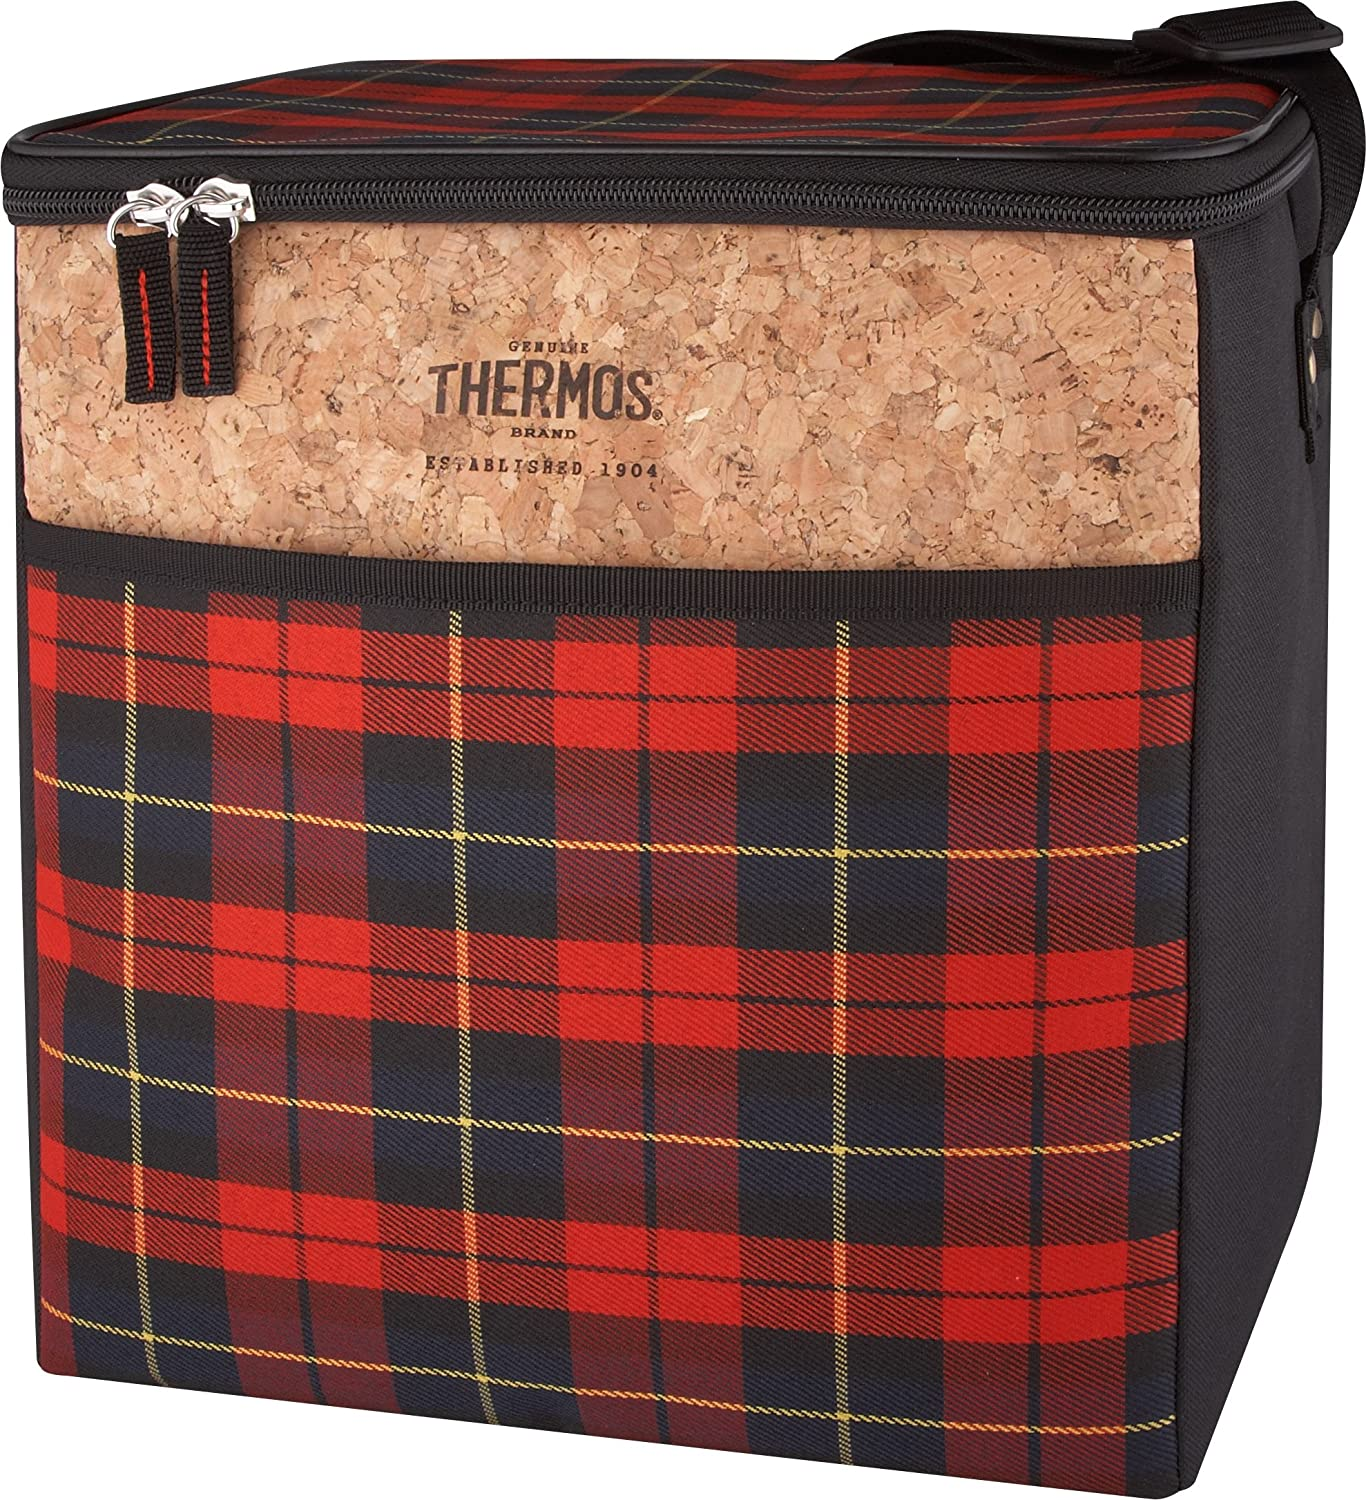 Thermos C45024003 Heritage 24 Can Cooler, Red Plaid